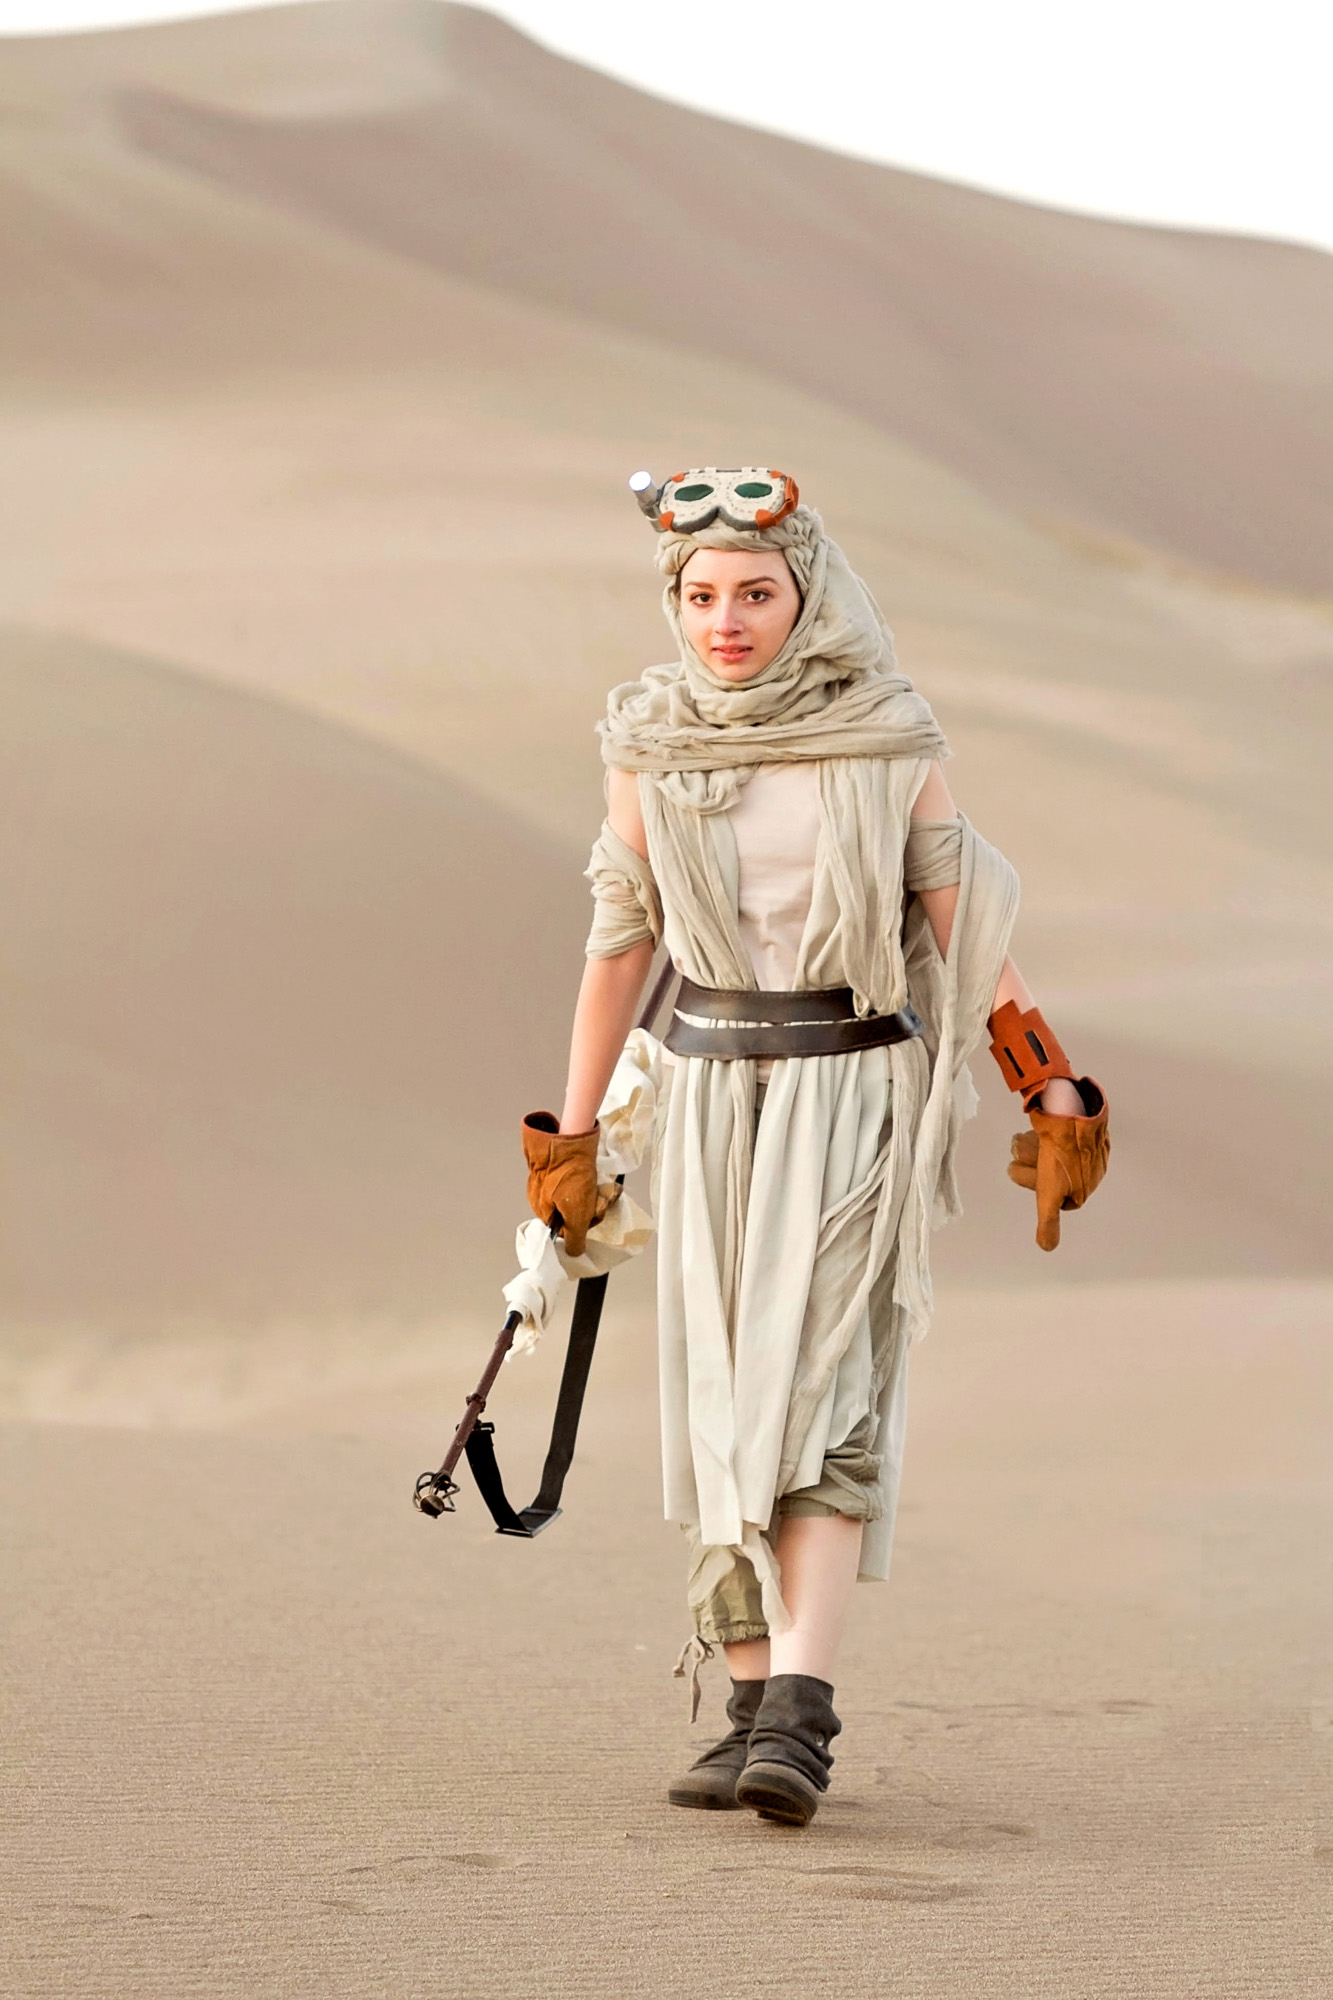 Jessica Stone Photography StarWars Styled Portrait Session -112.jpg